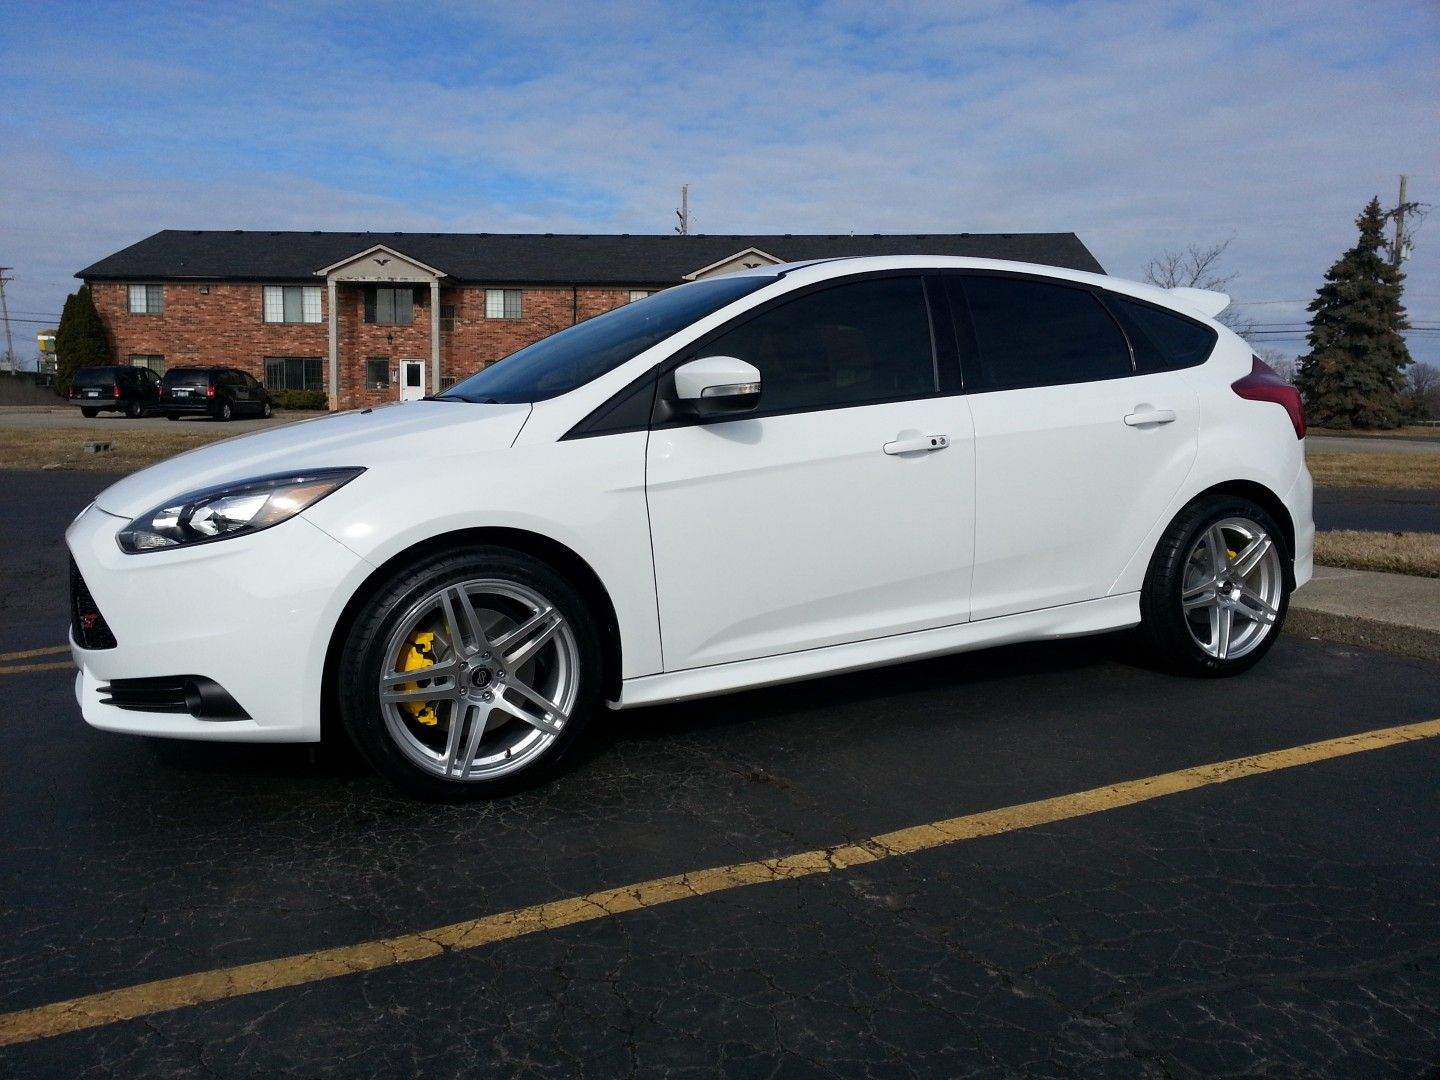 Focus st on enkei rsf5 wheelshtml